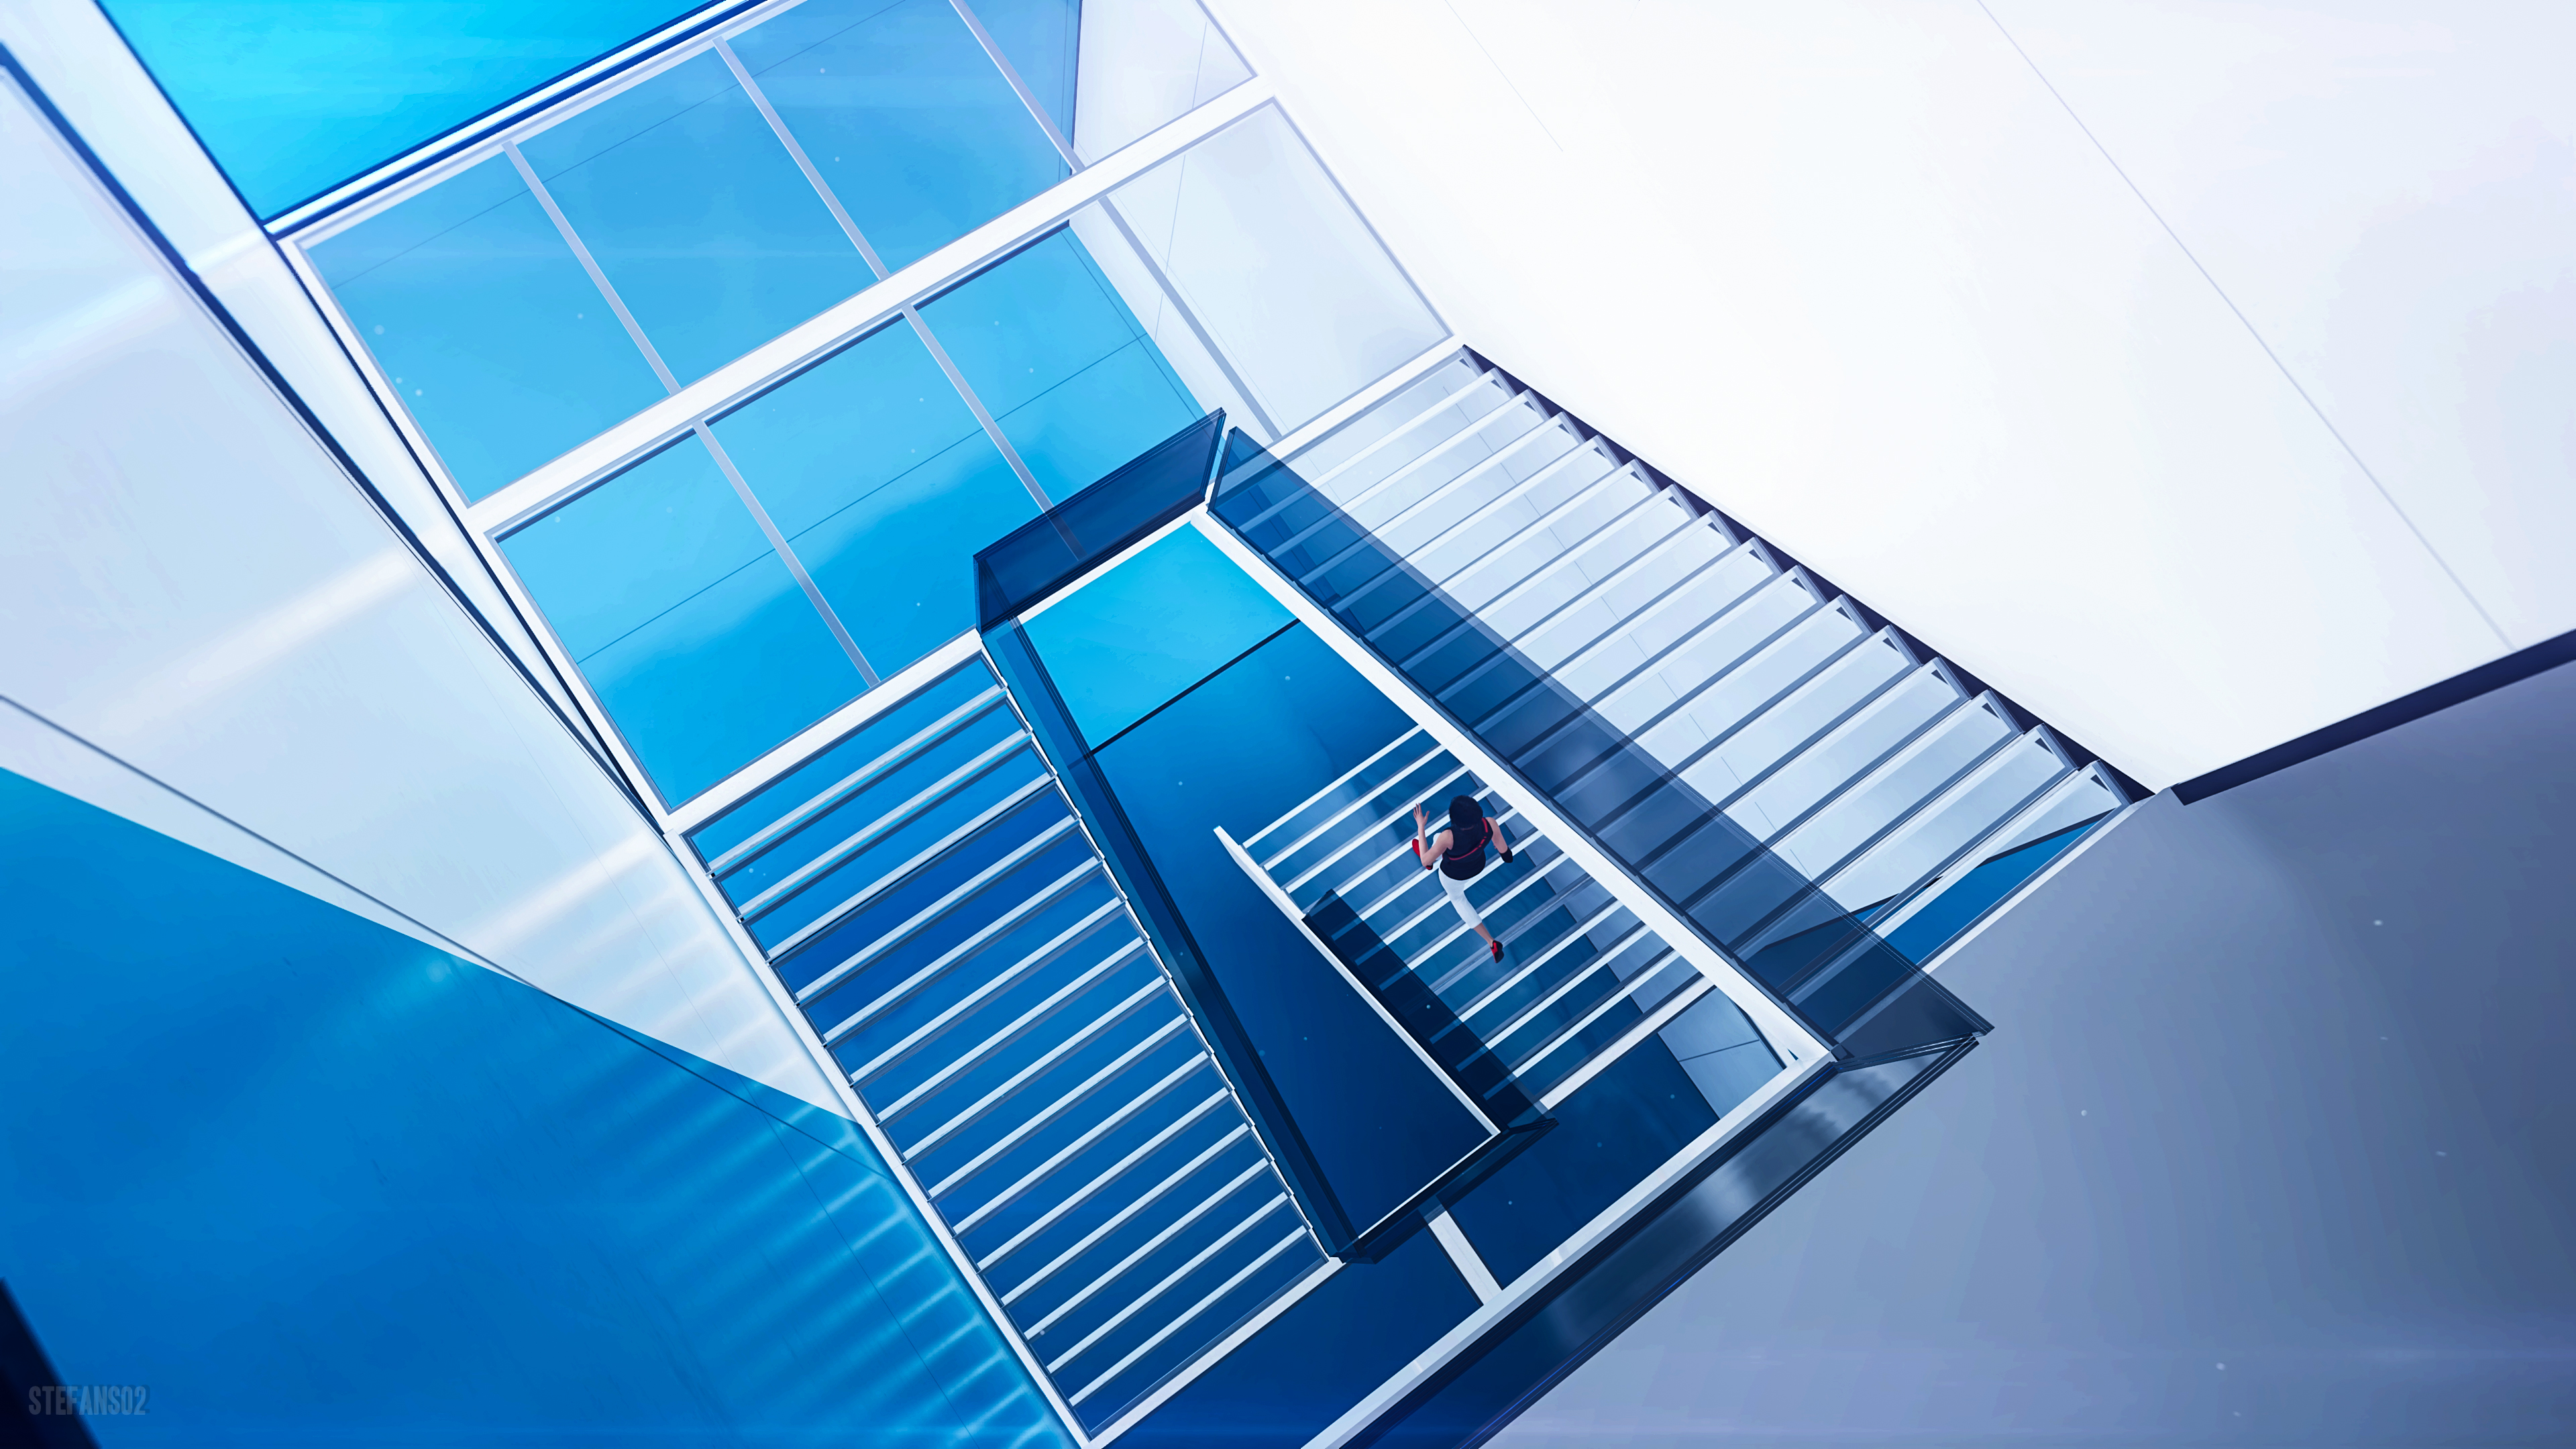 Mirror S Edge Catalyst Stairs 4k Ultra Hd Wallpaper Background